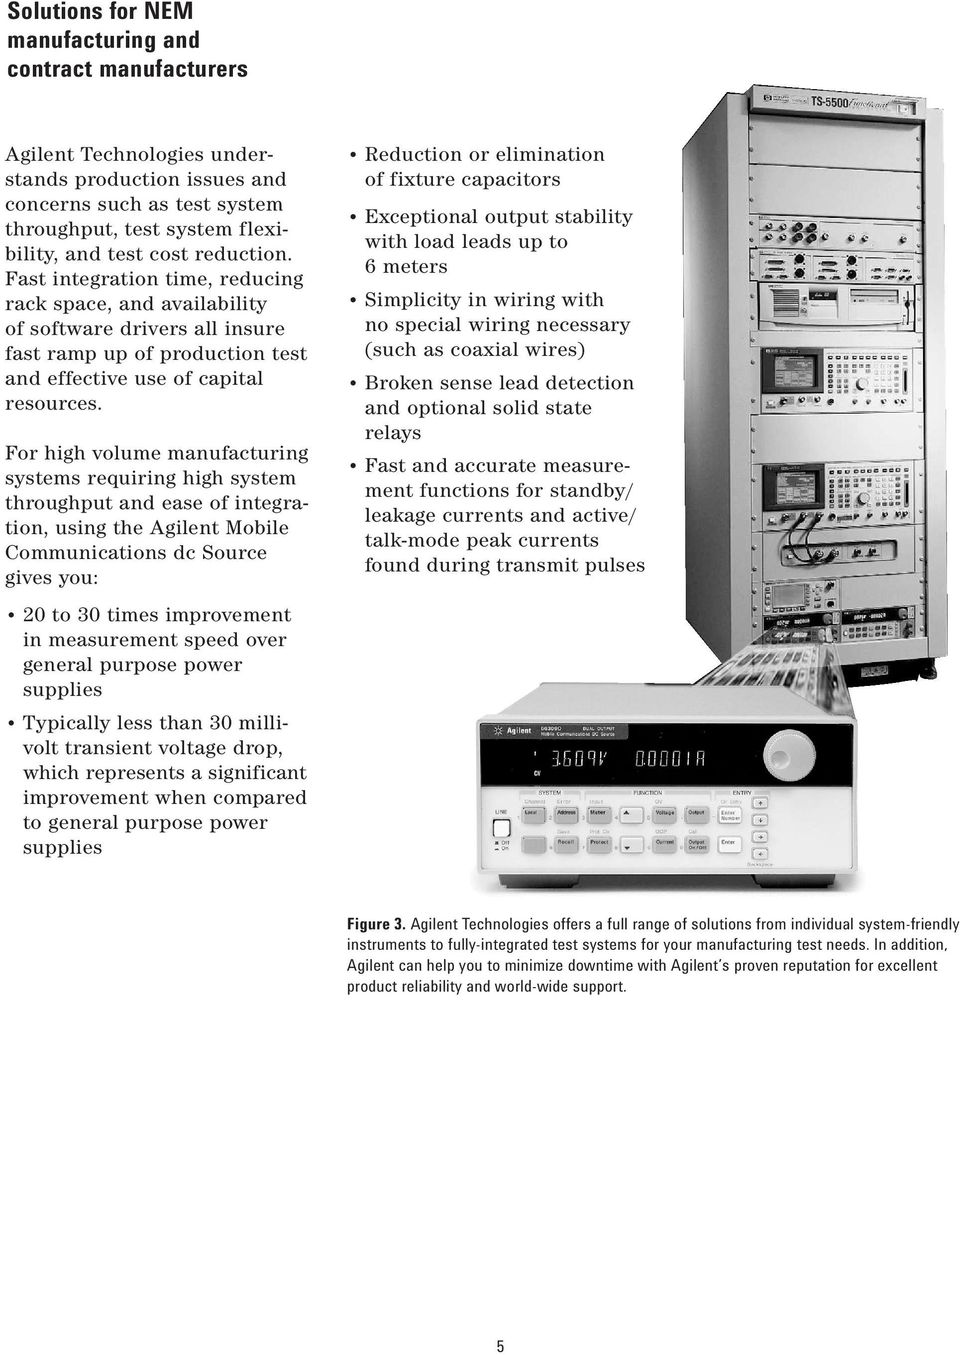 Agilent Mobile Communications Dc Sources Pdf Circuit It Can Uses With Power Supply Source 24vdc And Adjust Voltage For High Volume Manufacturing Systems Requiring System Throughput Ease Of Integration Using The